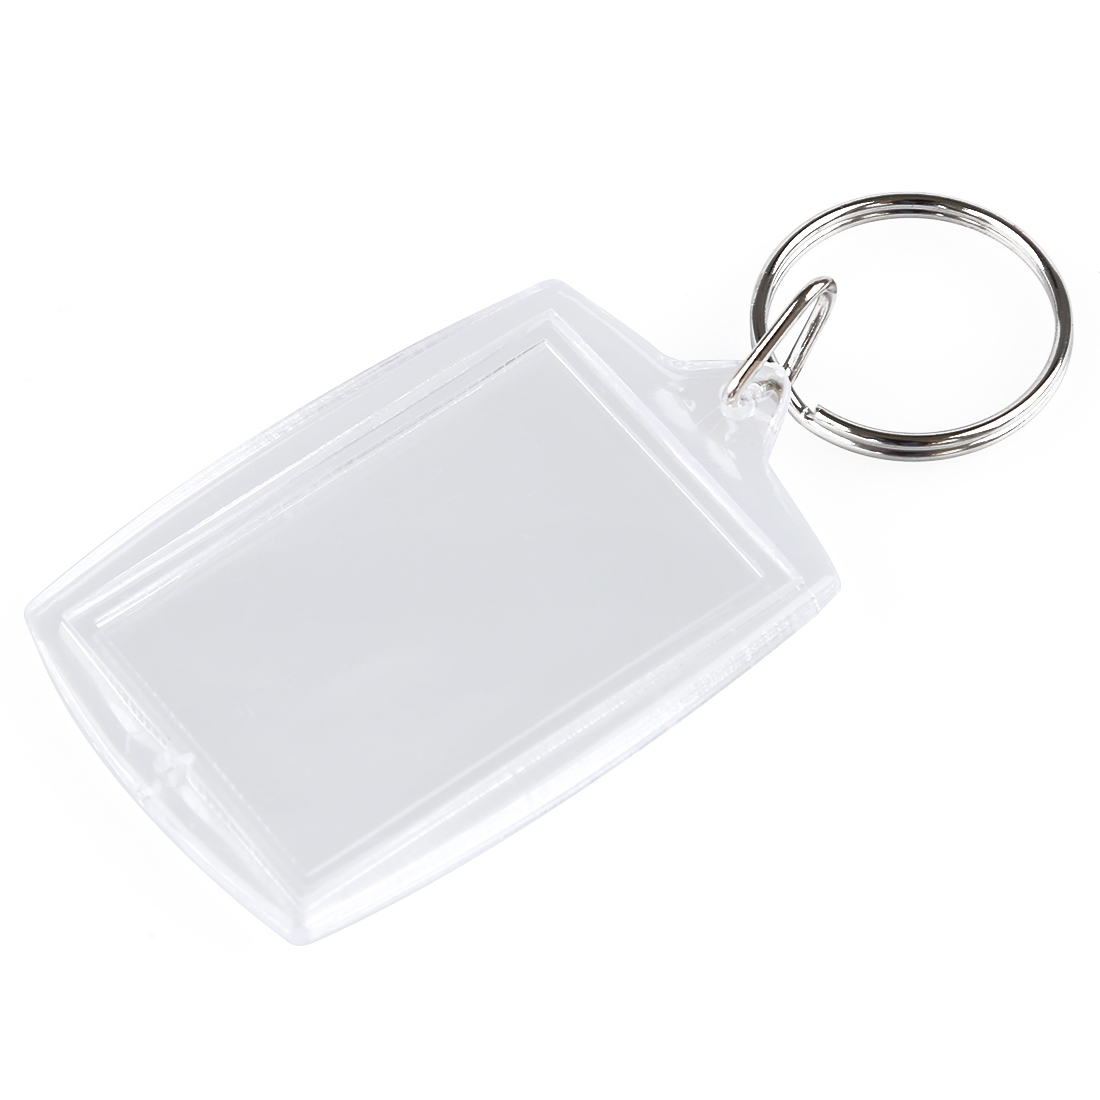 10pcs transparent blank insert photo picture frame key ring split 10pcs transparent blank insert photo picture frame key ring split keychain in key chains from jewelry accessories on aliexpress alibaba group jeuxipadfo Choice Image